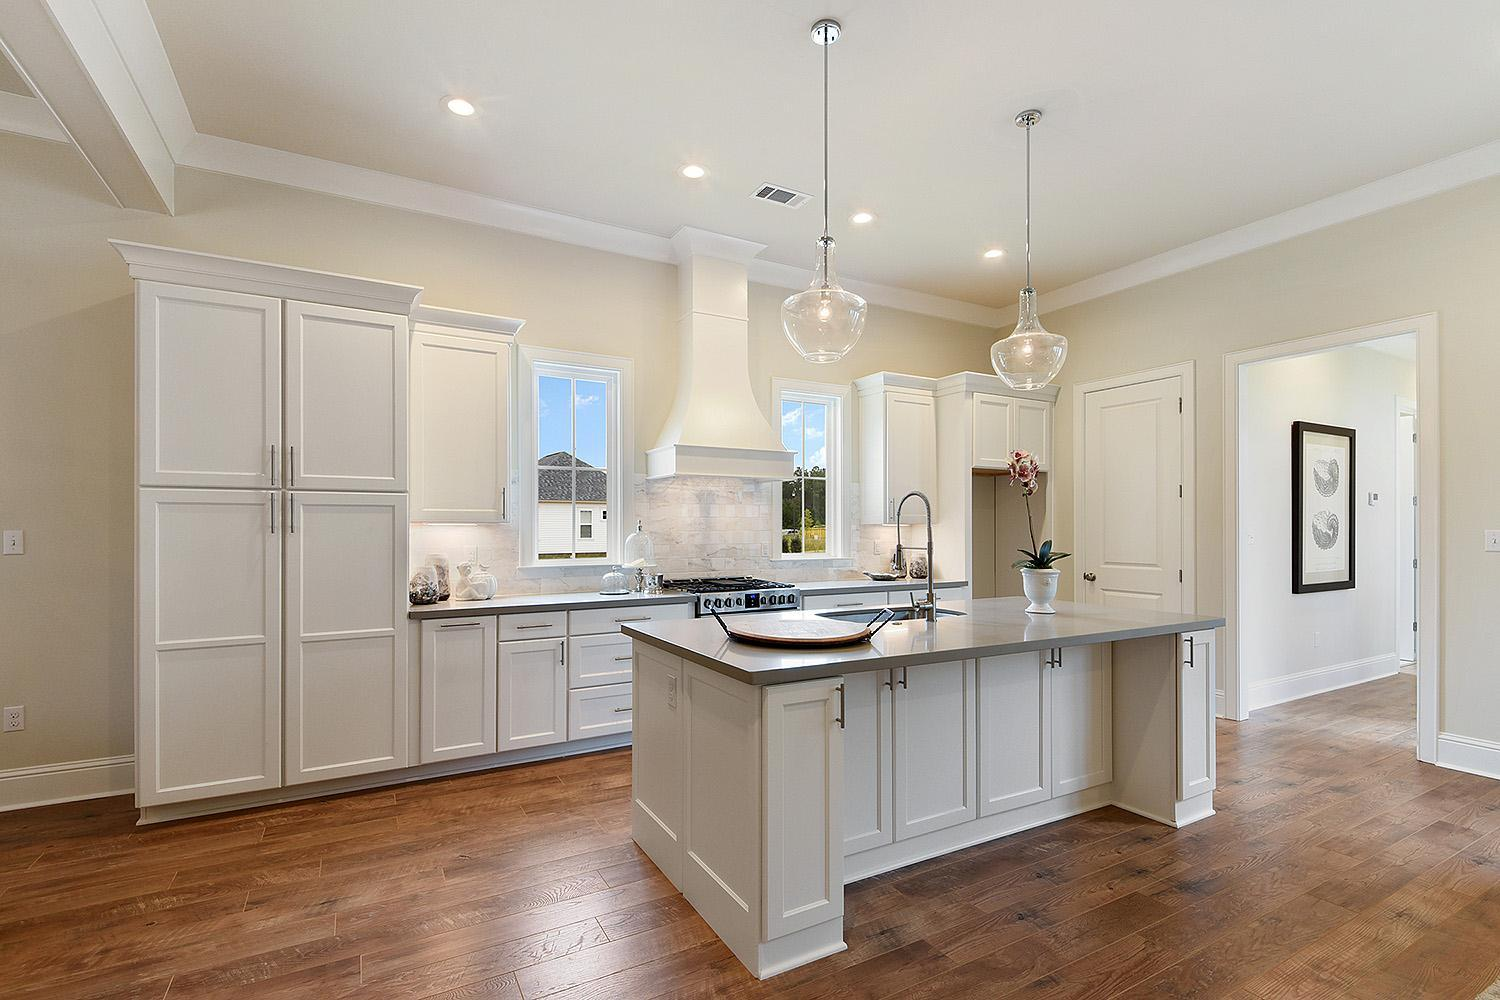 Kitchen featured in the Charleston (Money Hill Courtyard) By Highland Homes in New Orleans, LA